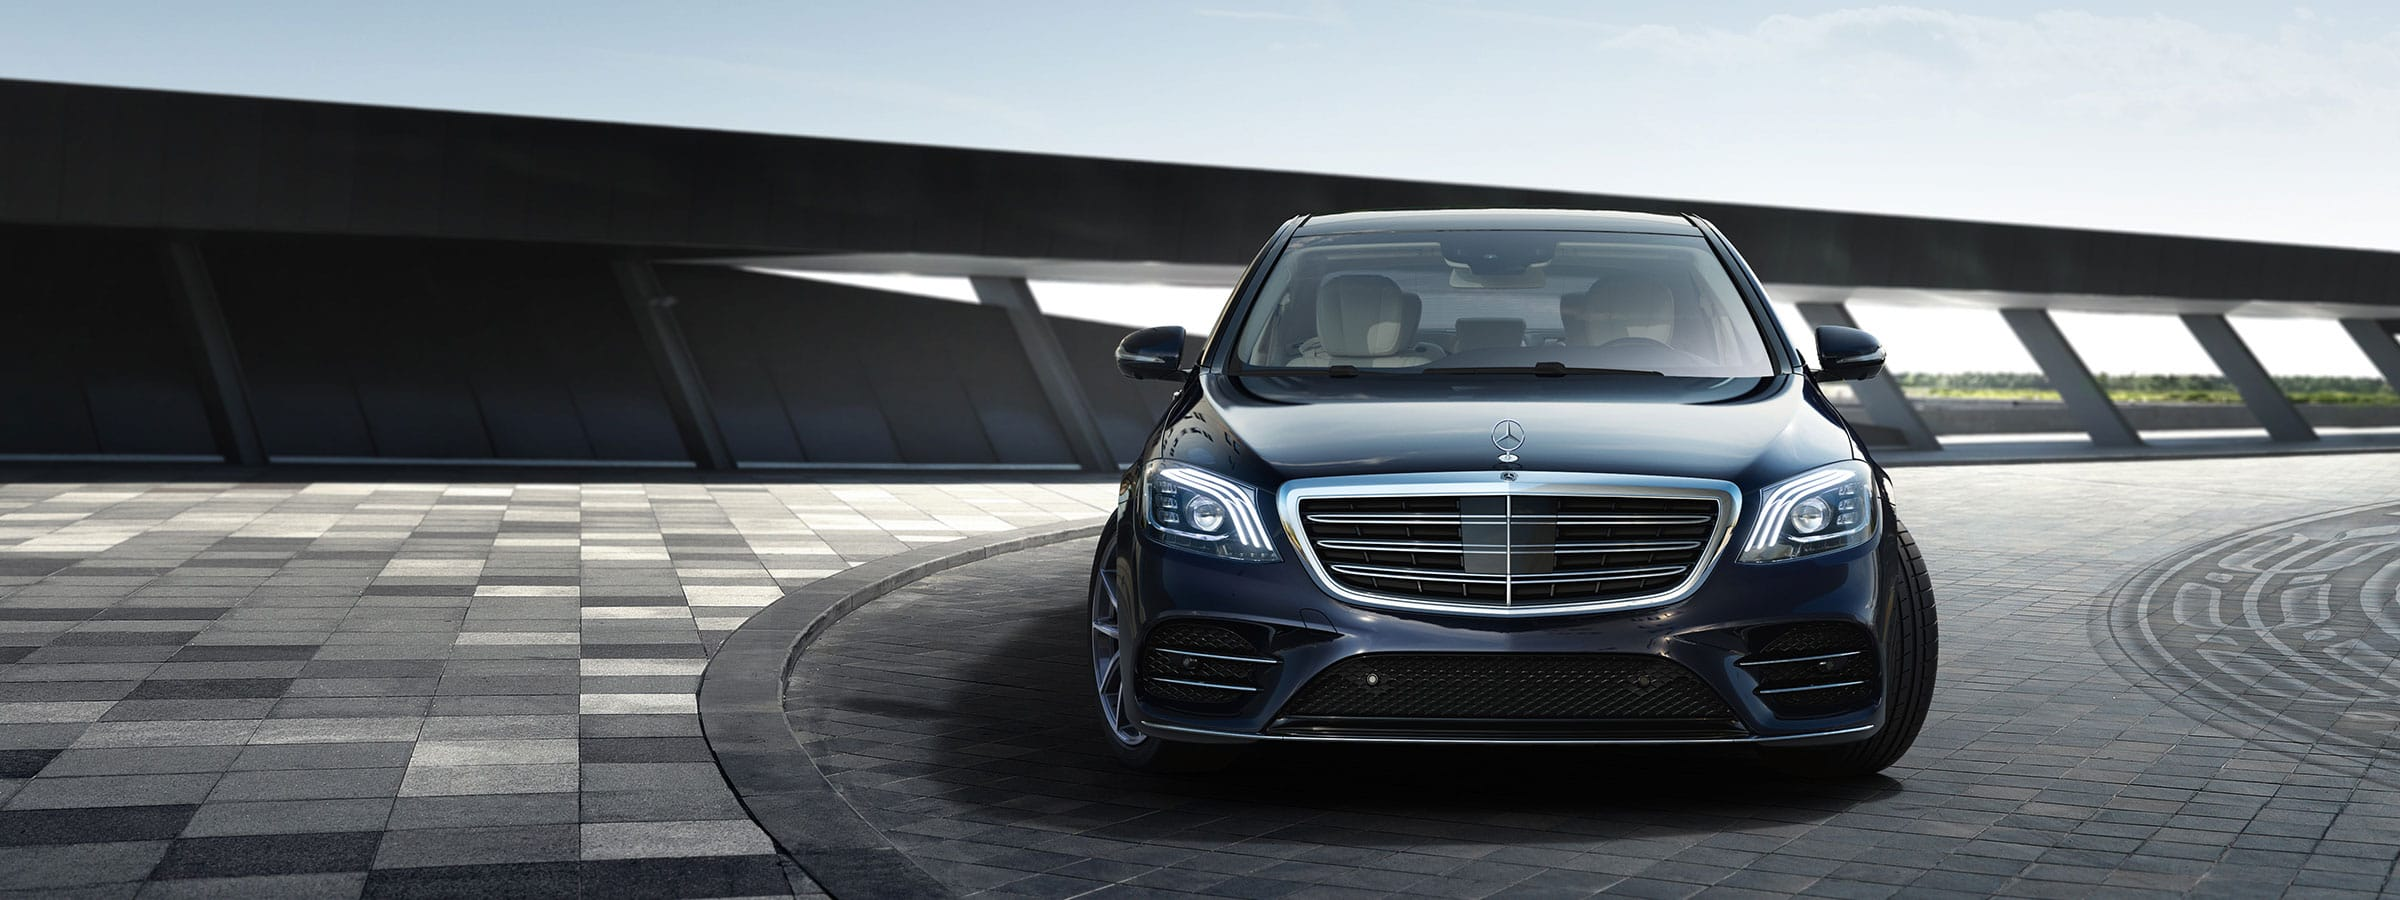 S Class Luxury Sedan Mercedes Benz Mercedes Benz Usa